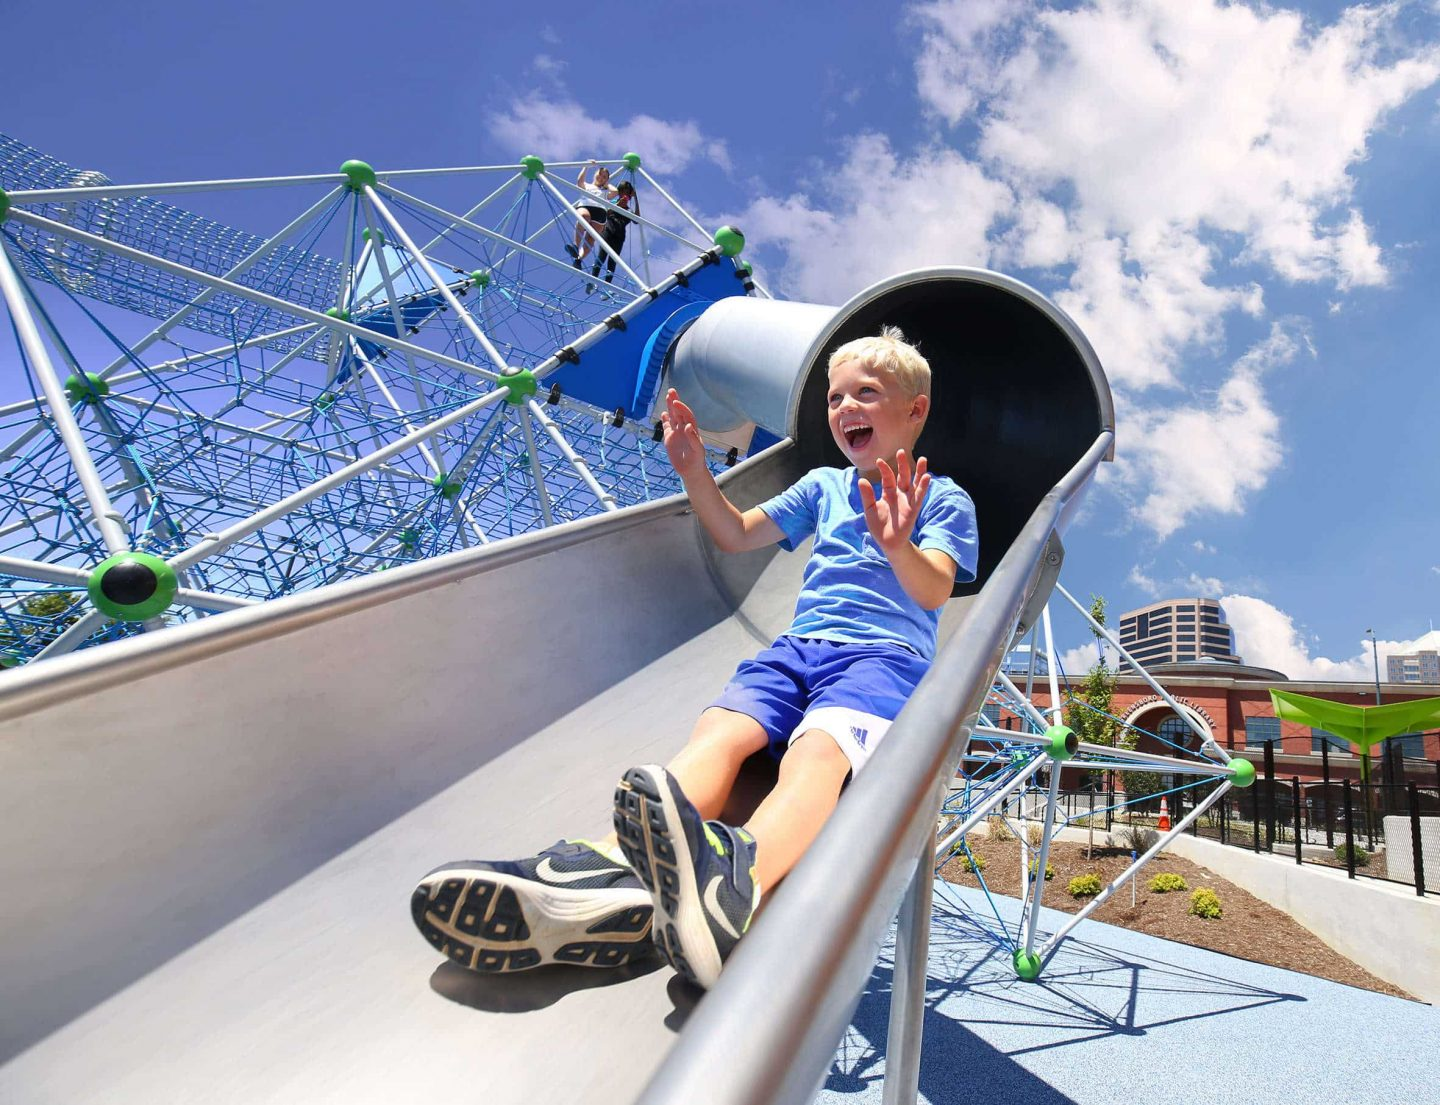 Sliding boy, Berliner Seilfabrik - play equipment for life